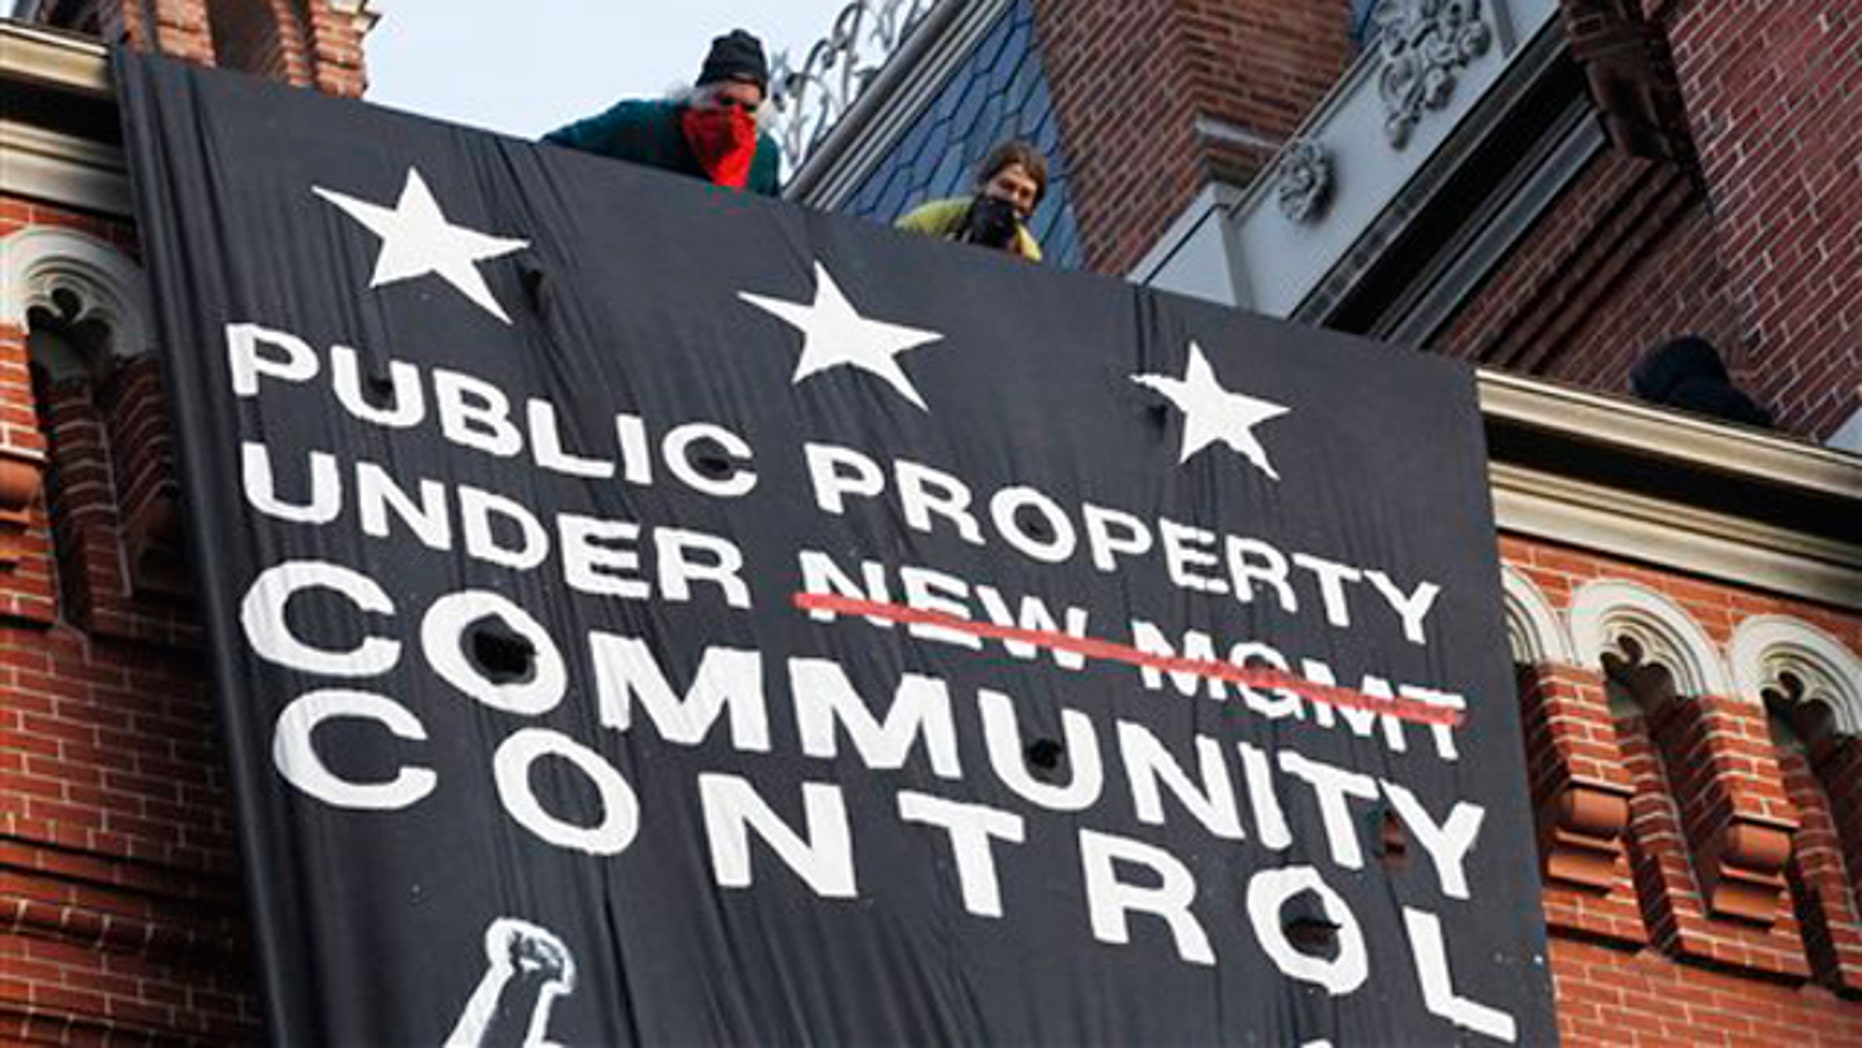 Nov. 19, 2011: A group of protesters inspired by Occupy D.C. protests look out from the roof, after hanging a banner on Franklin School building in Washington, D.C.